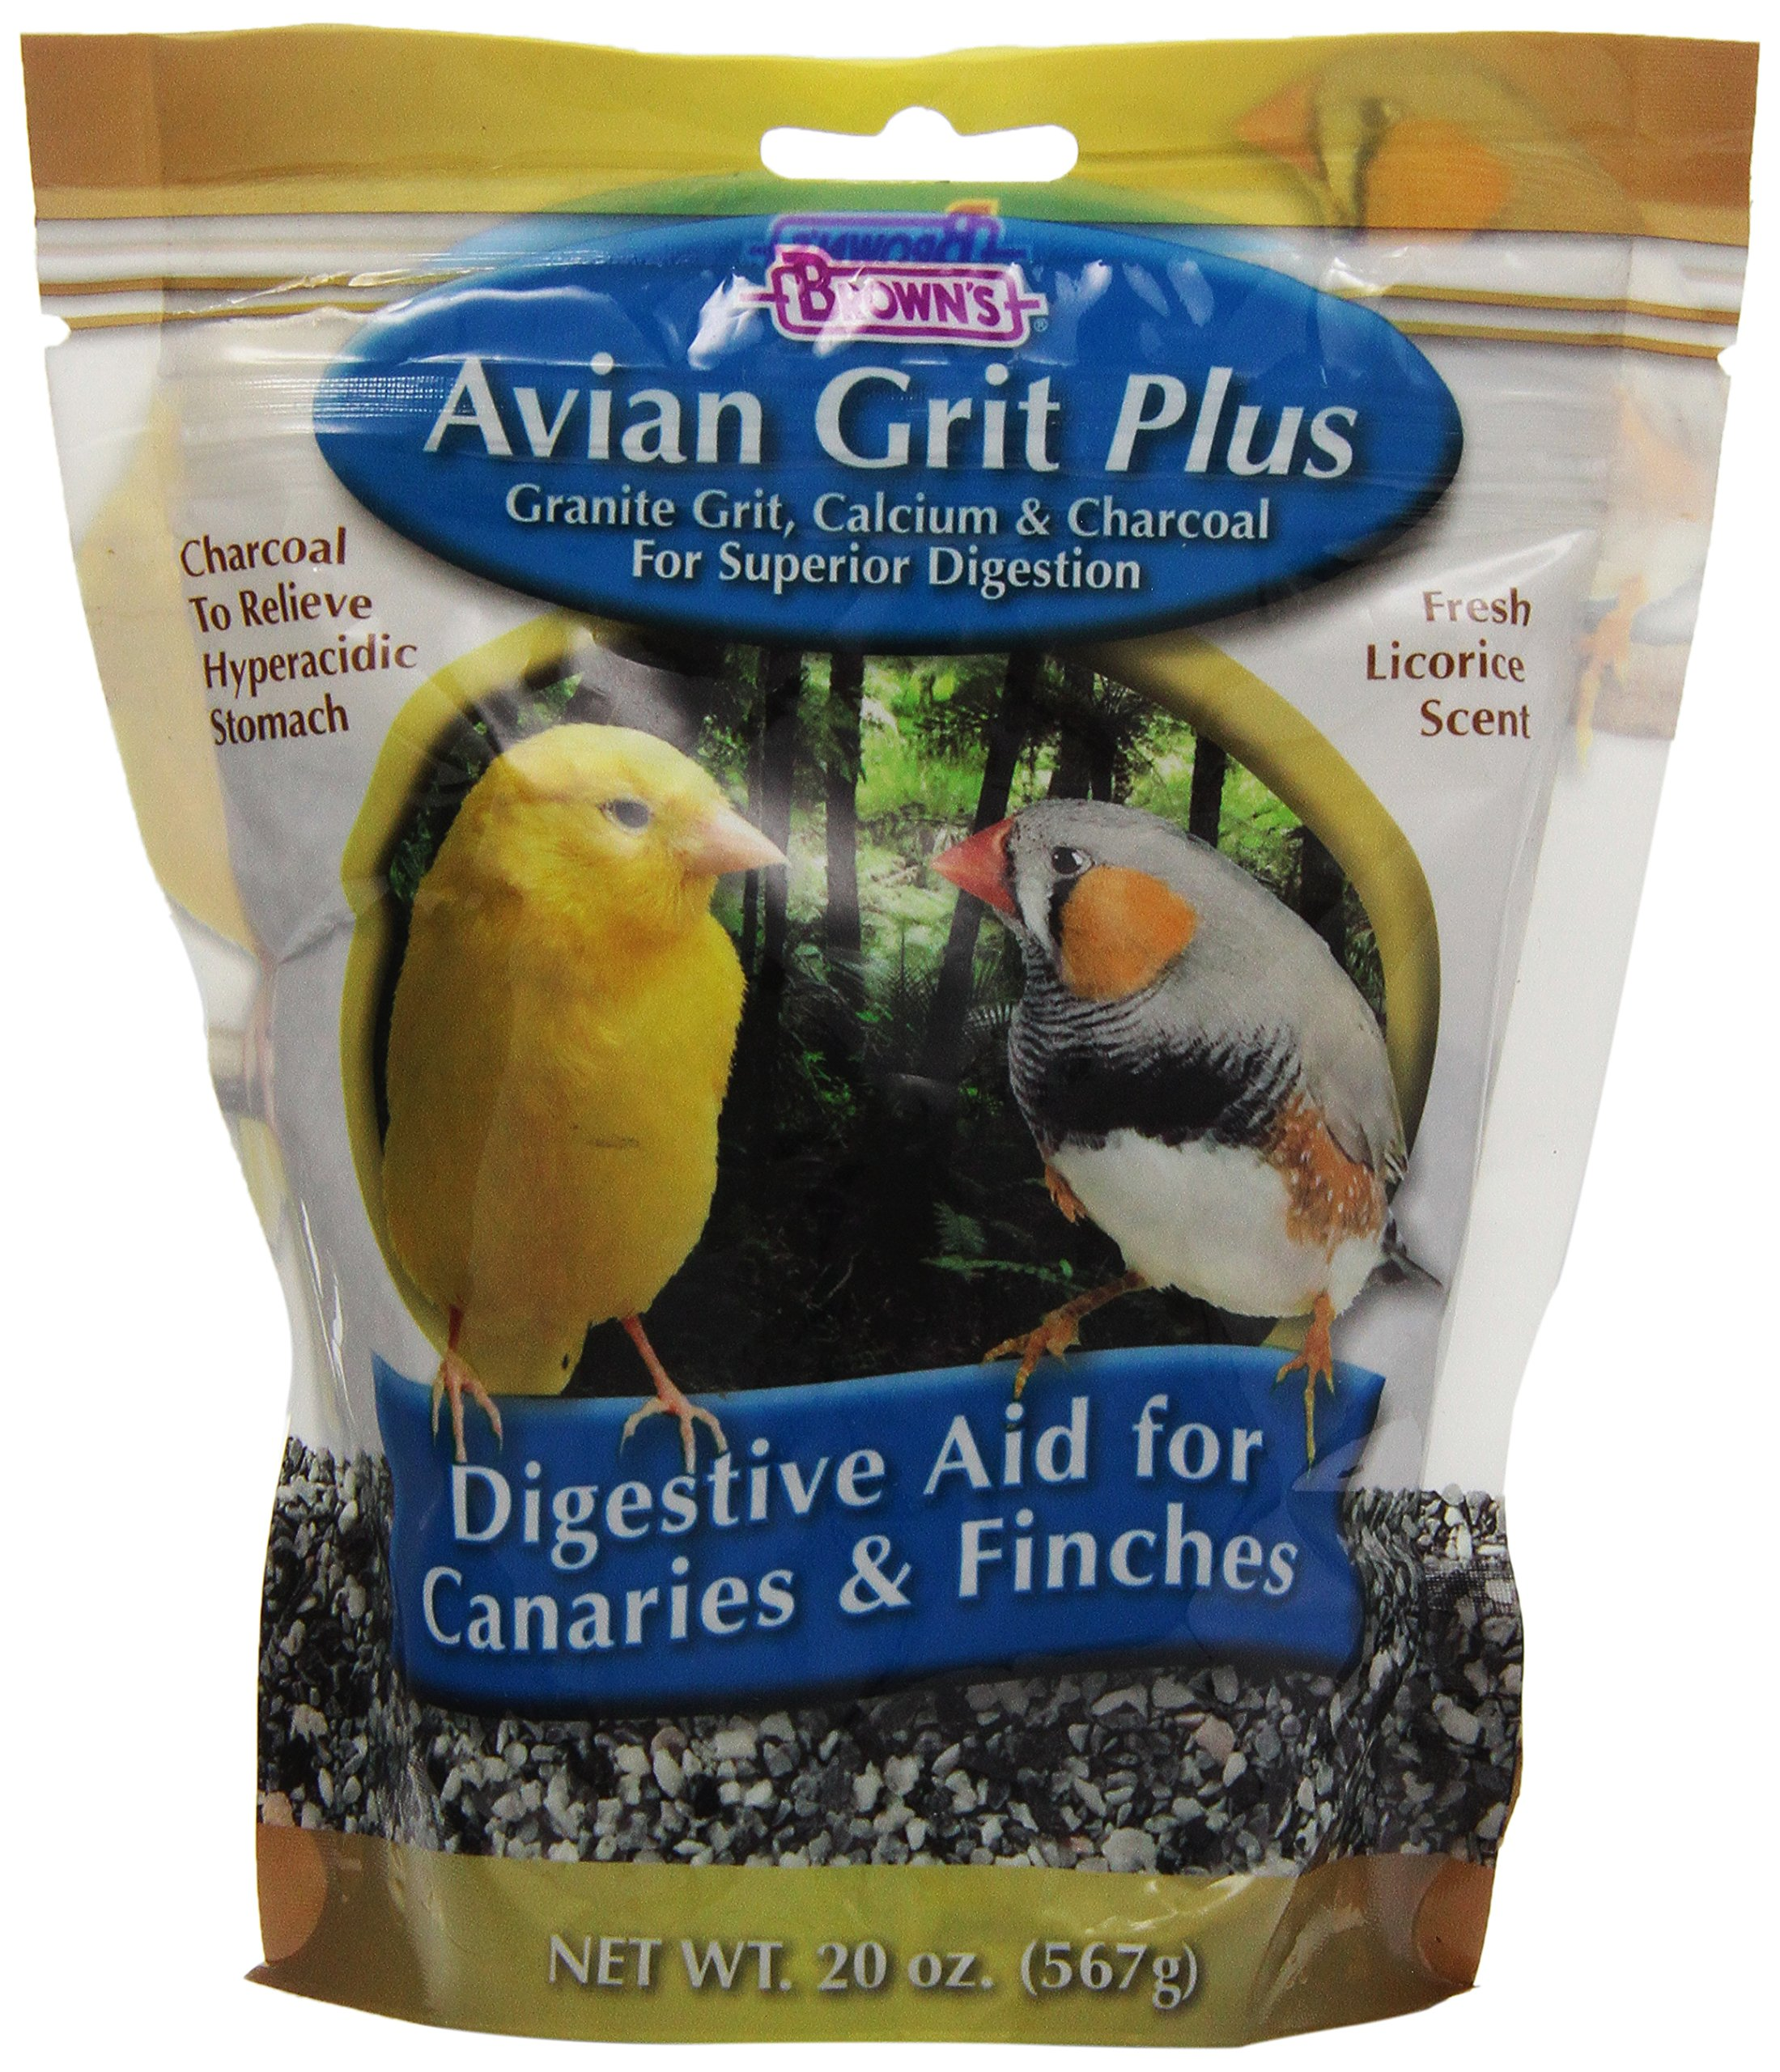 Brown's Avian Grit Plus Digestive Aid for Finches and Canaries with Licorice Scent, 20-Ounce by F.M. Brown's